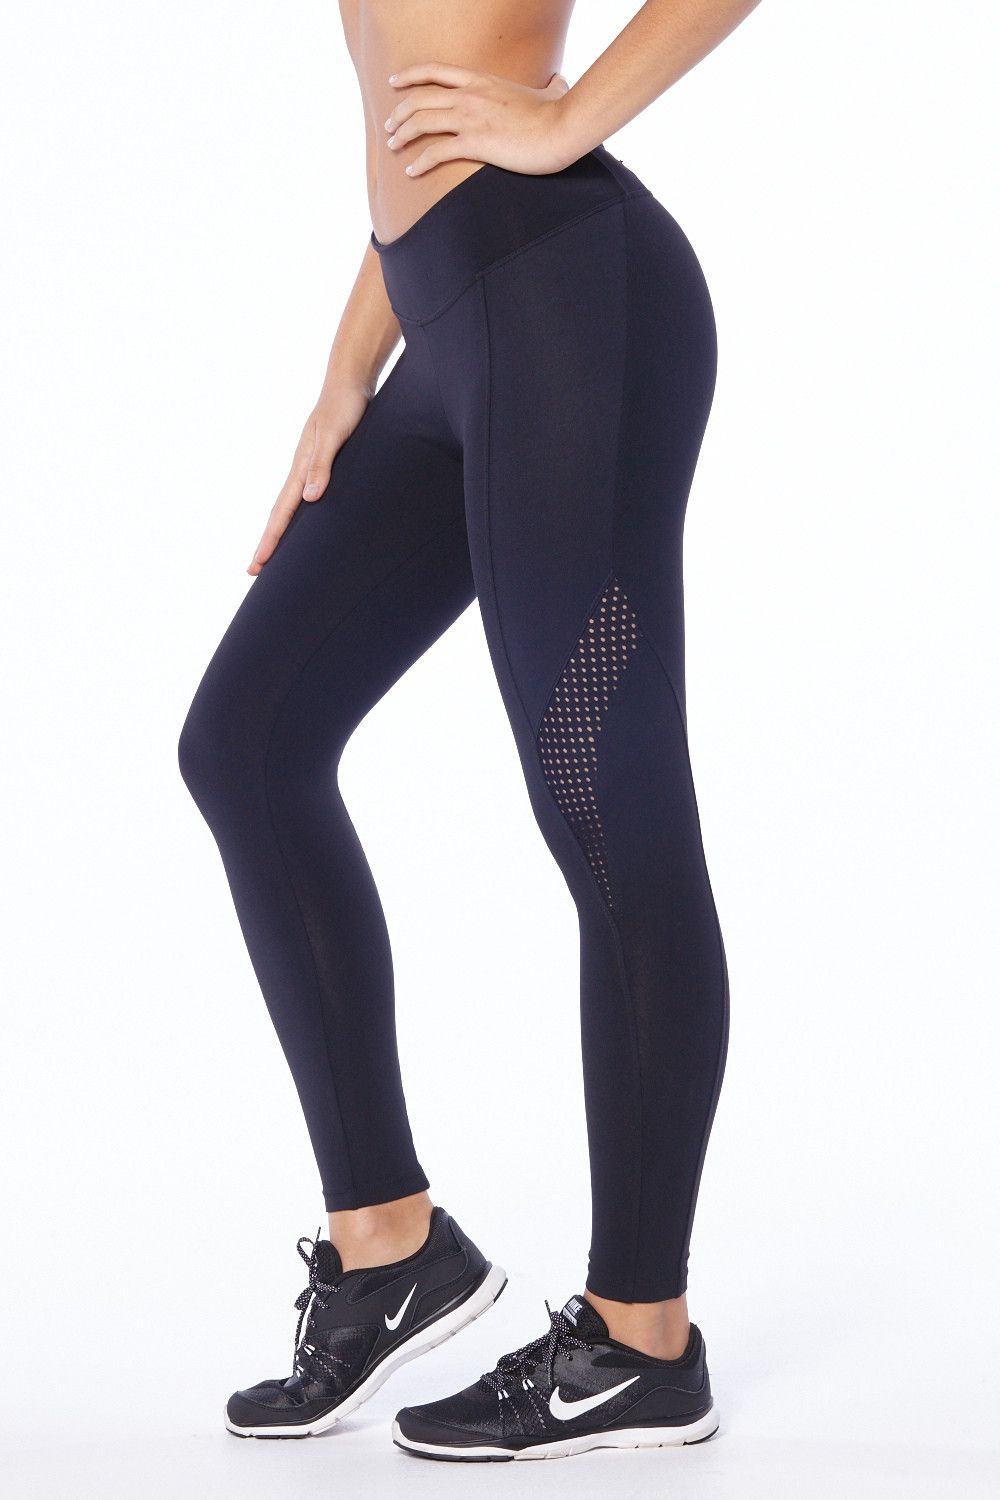 114e75d2311825 These athletic leggings with perforated detailing are the the best fitting  running pants in town! Ideal to go from the track, to anywhere the day  might take ...